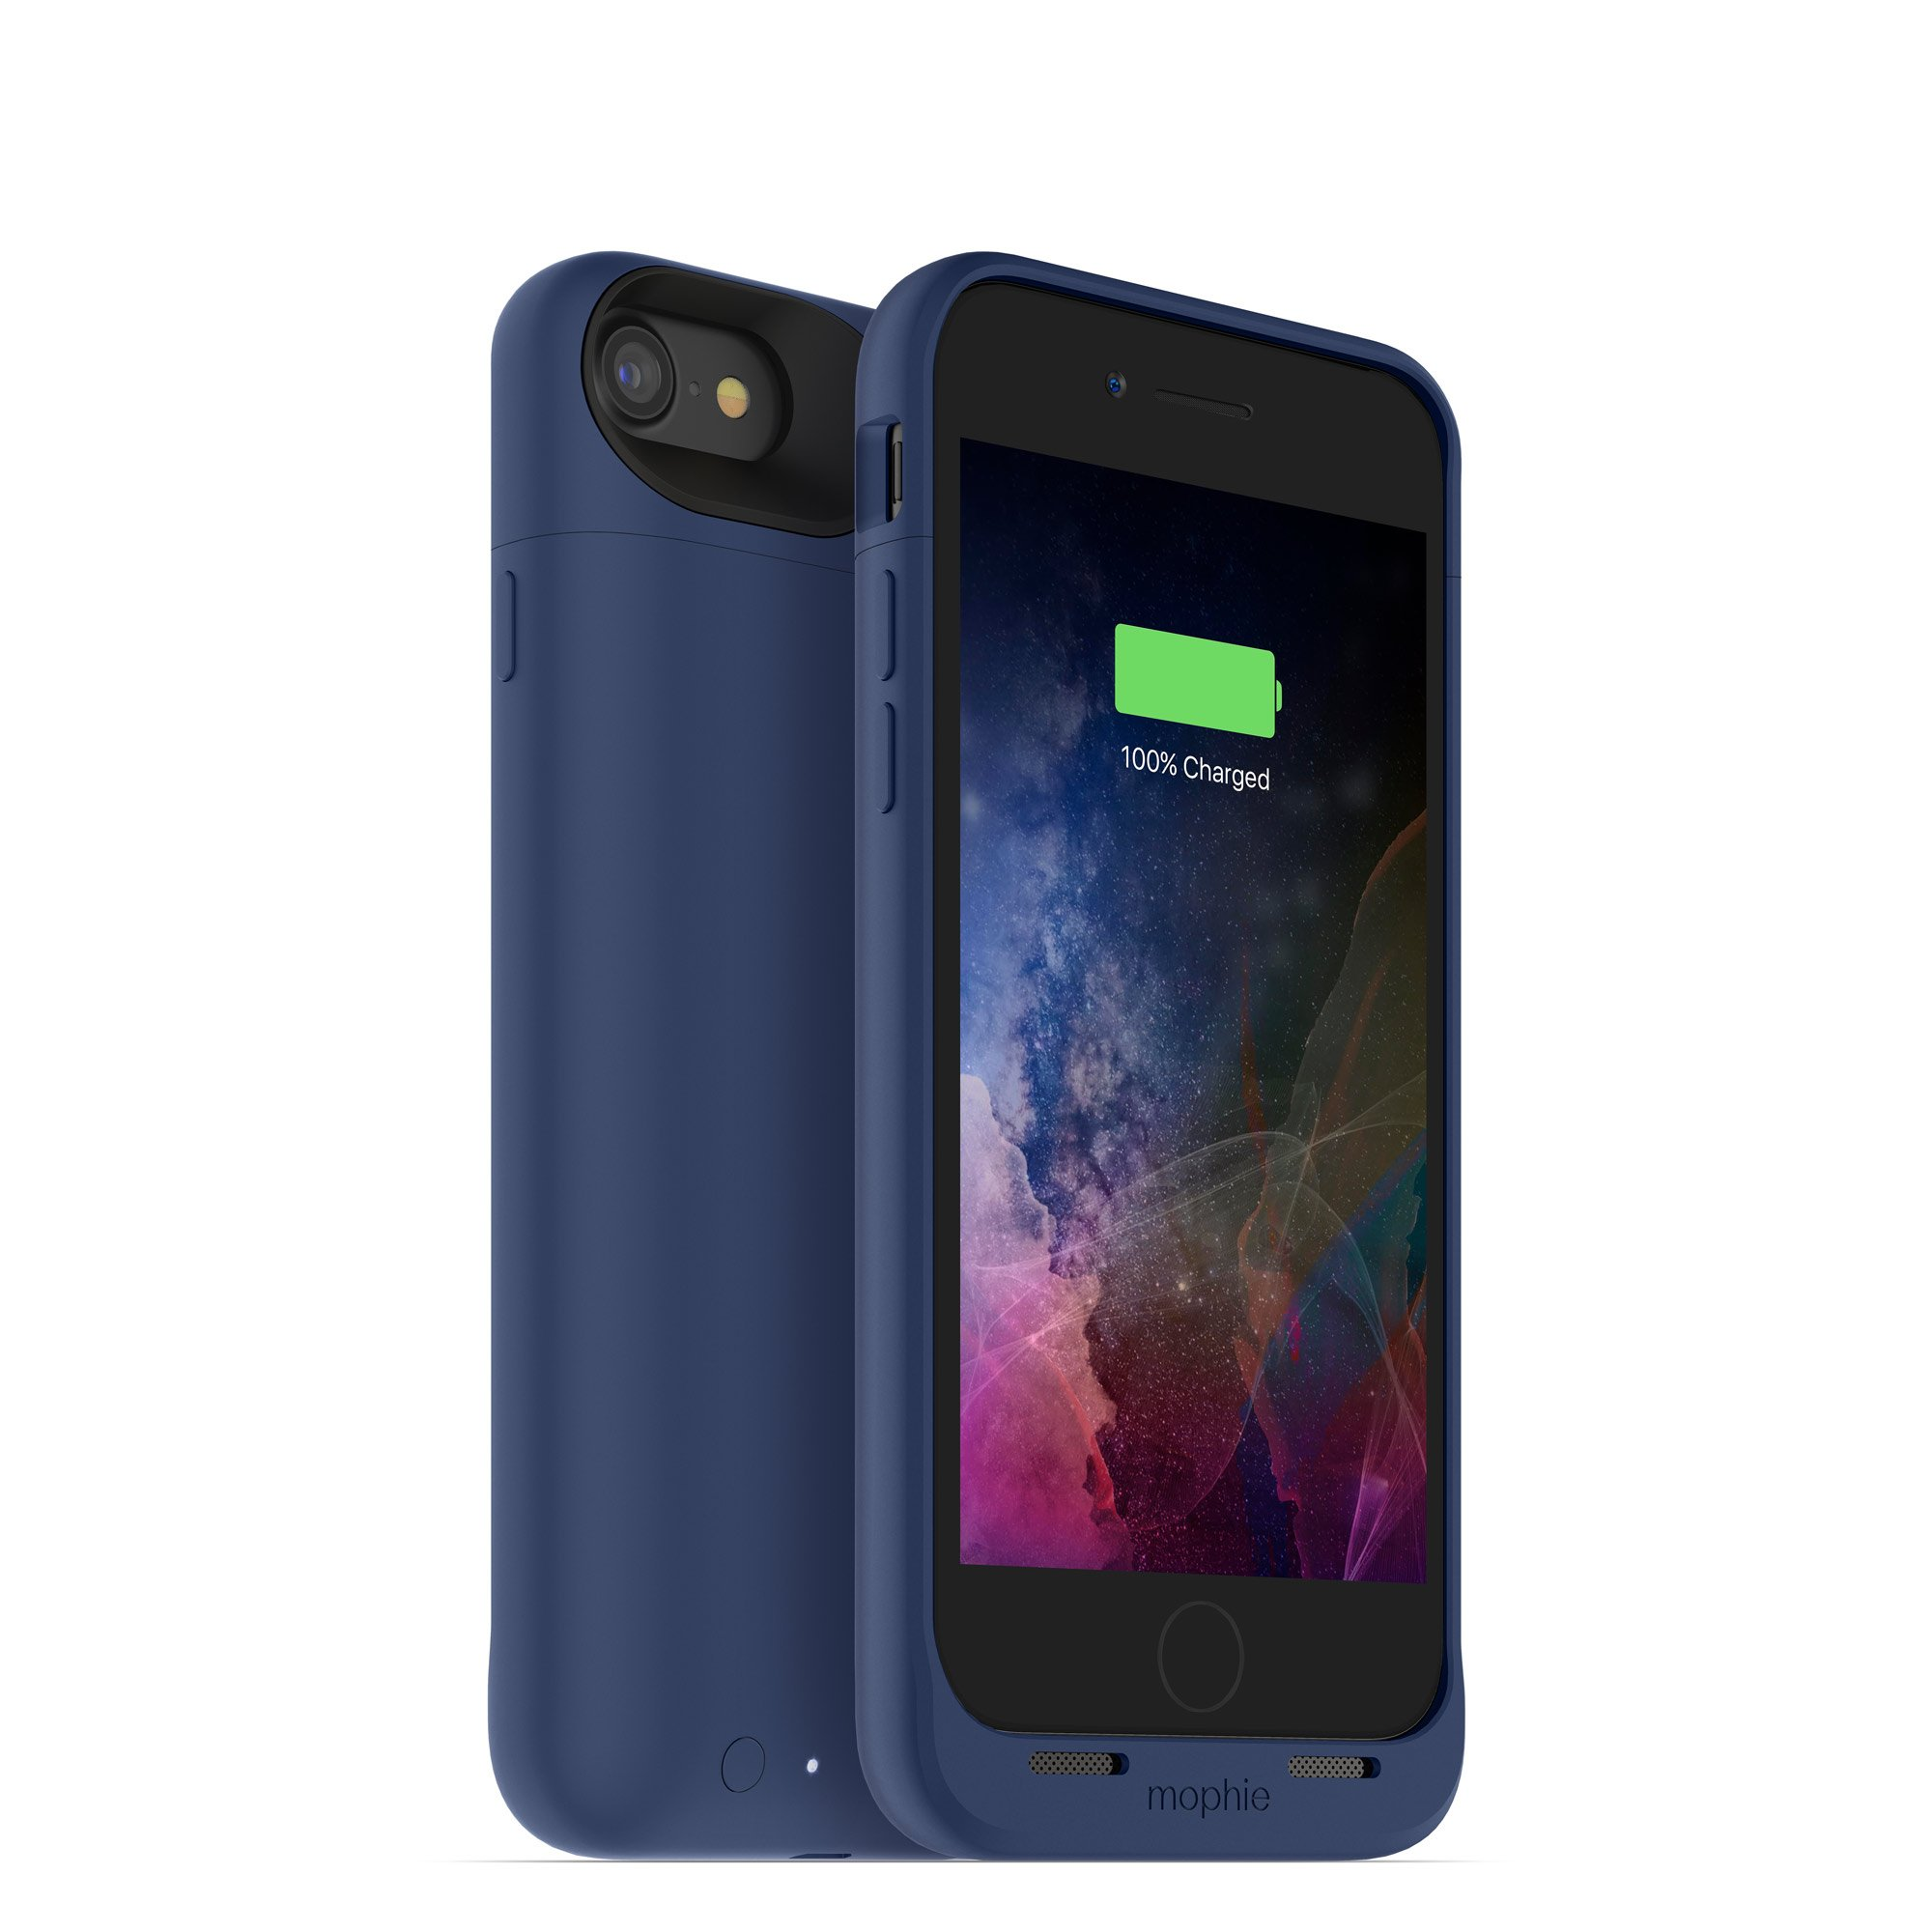 mophie juice pack wireless  - Charge Force Wireless Power - Wireless Charging Protective Battery Pack Case for iPhone 8 and iPhone 7 - Blue by ZAGG